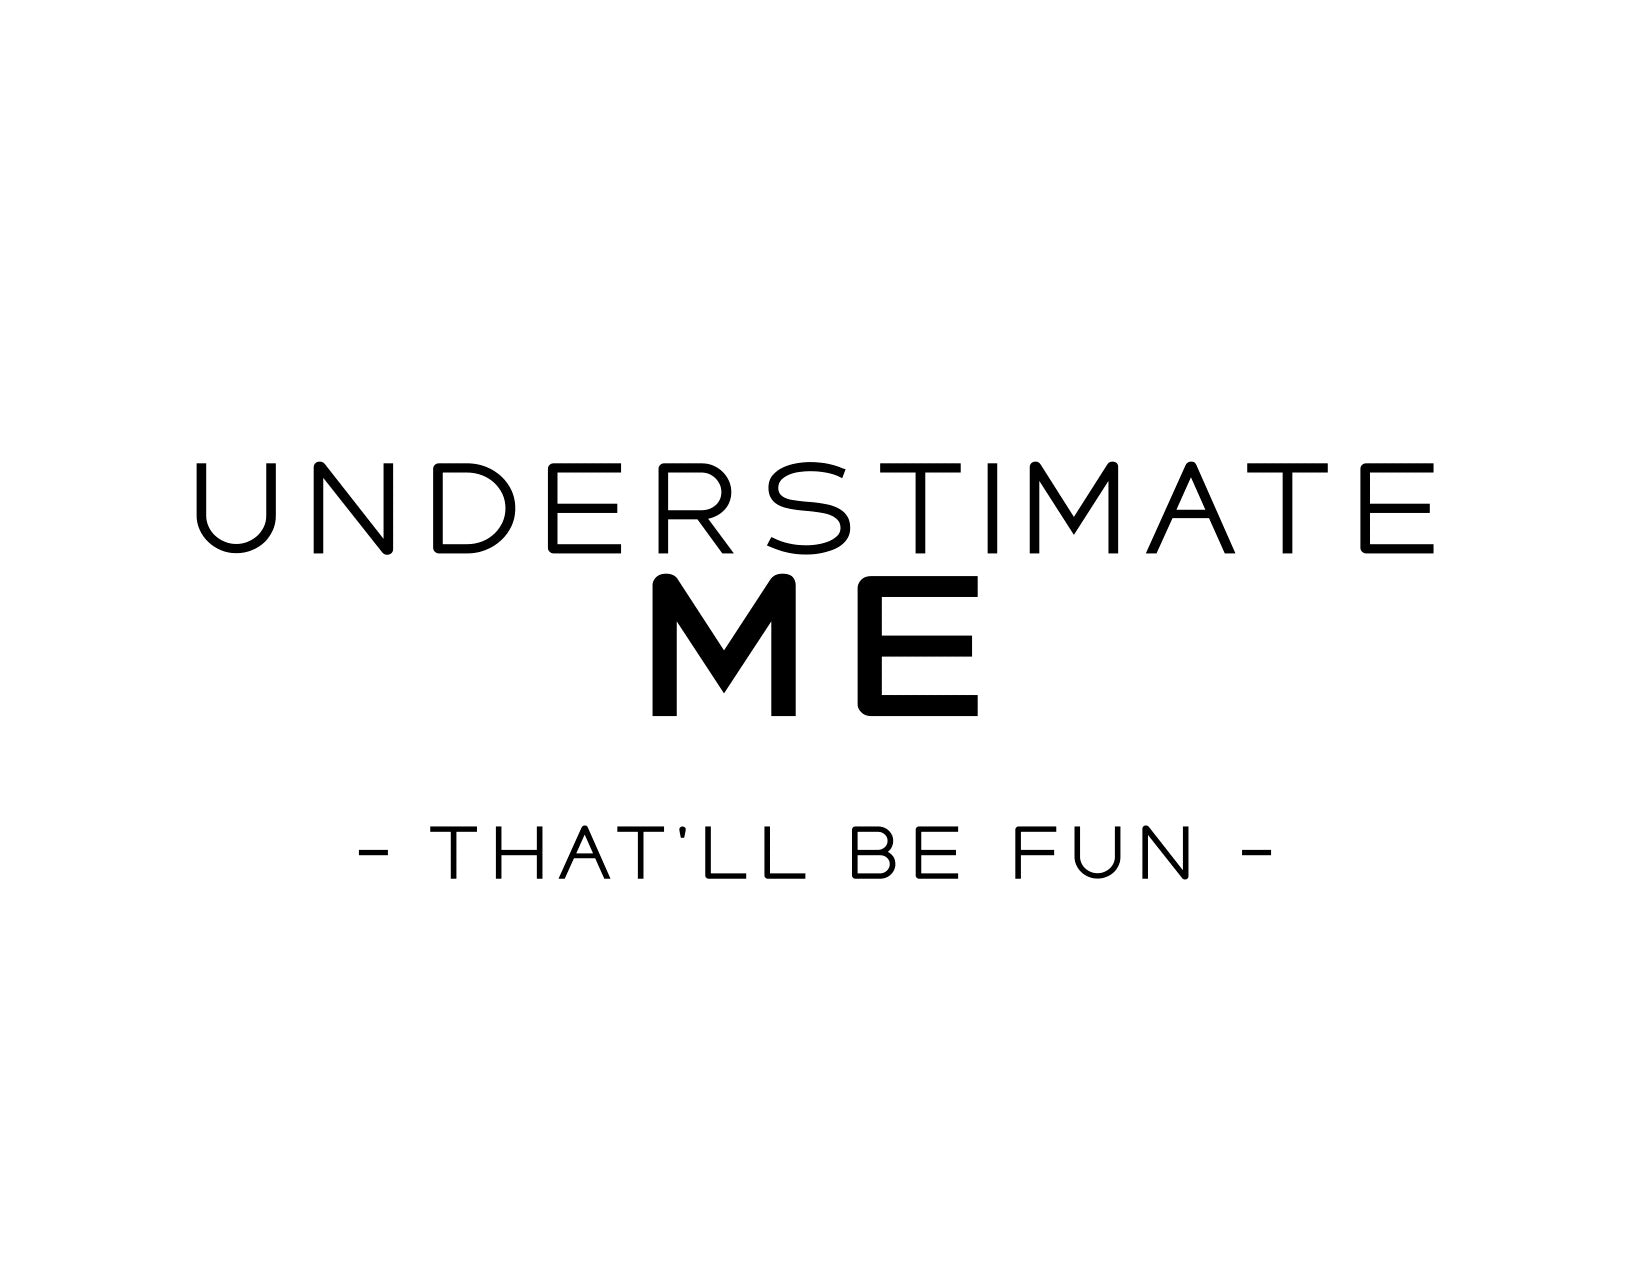 Underestimate Me That Will Be Fun